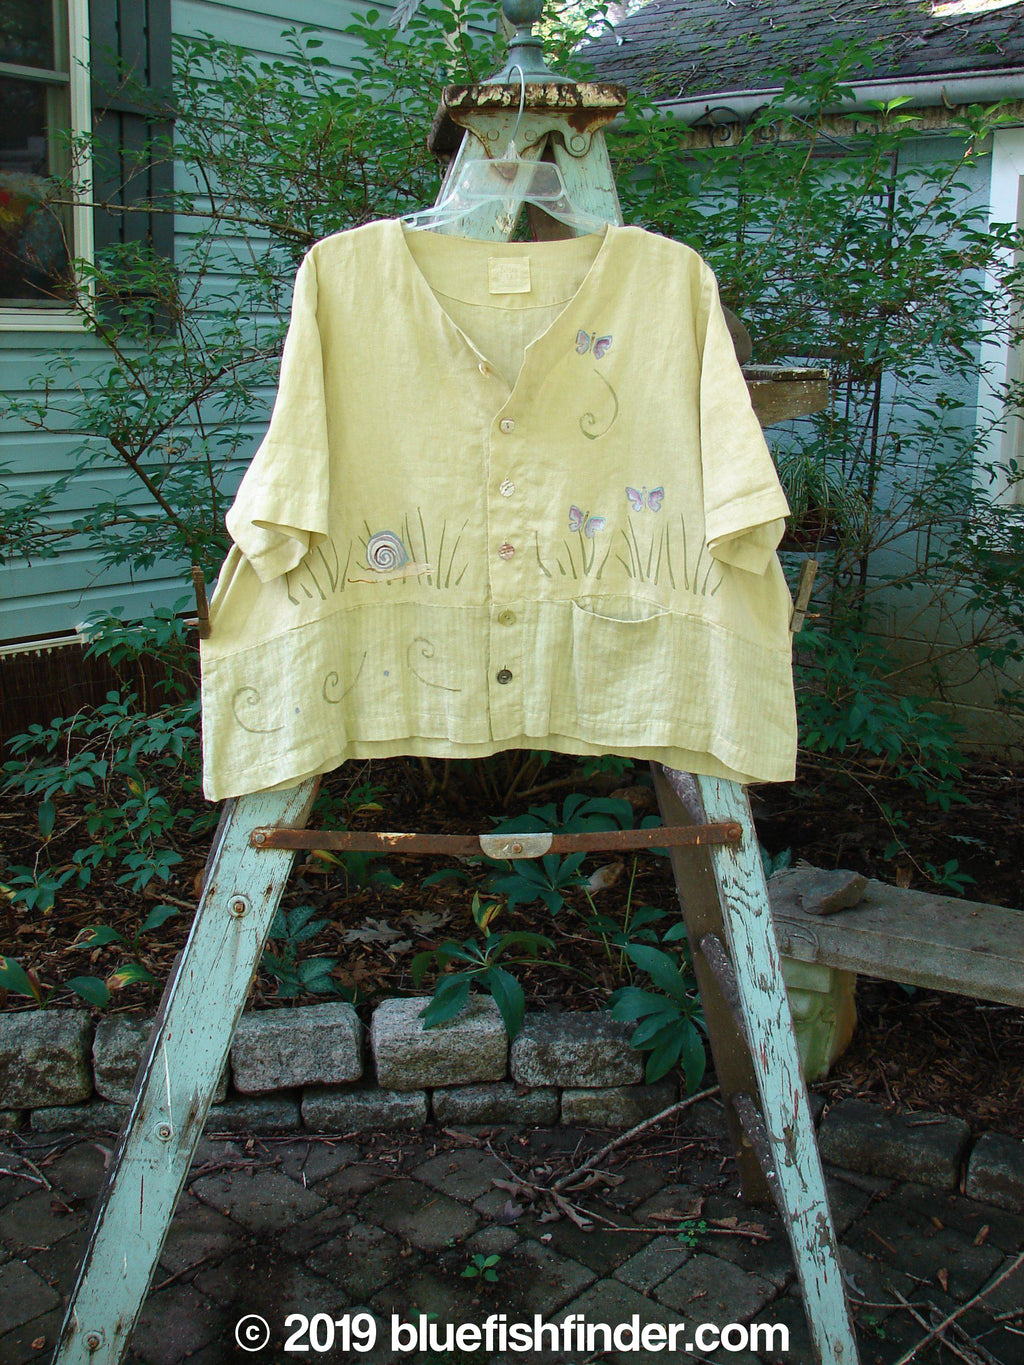 Vintage Blue Fish Clothing 1999 Cabana Top Butterfly Grass Citron Size 2- Bluefishfinder.com